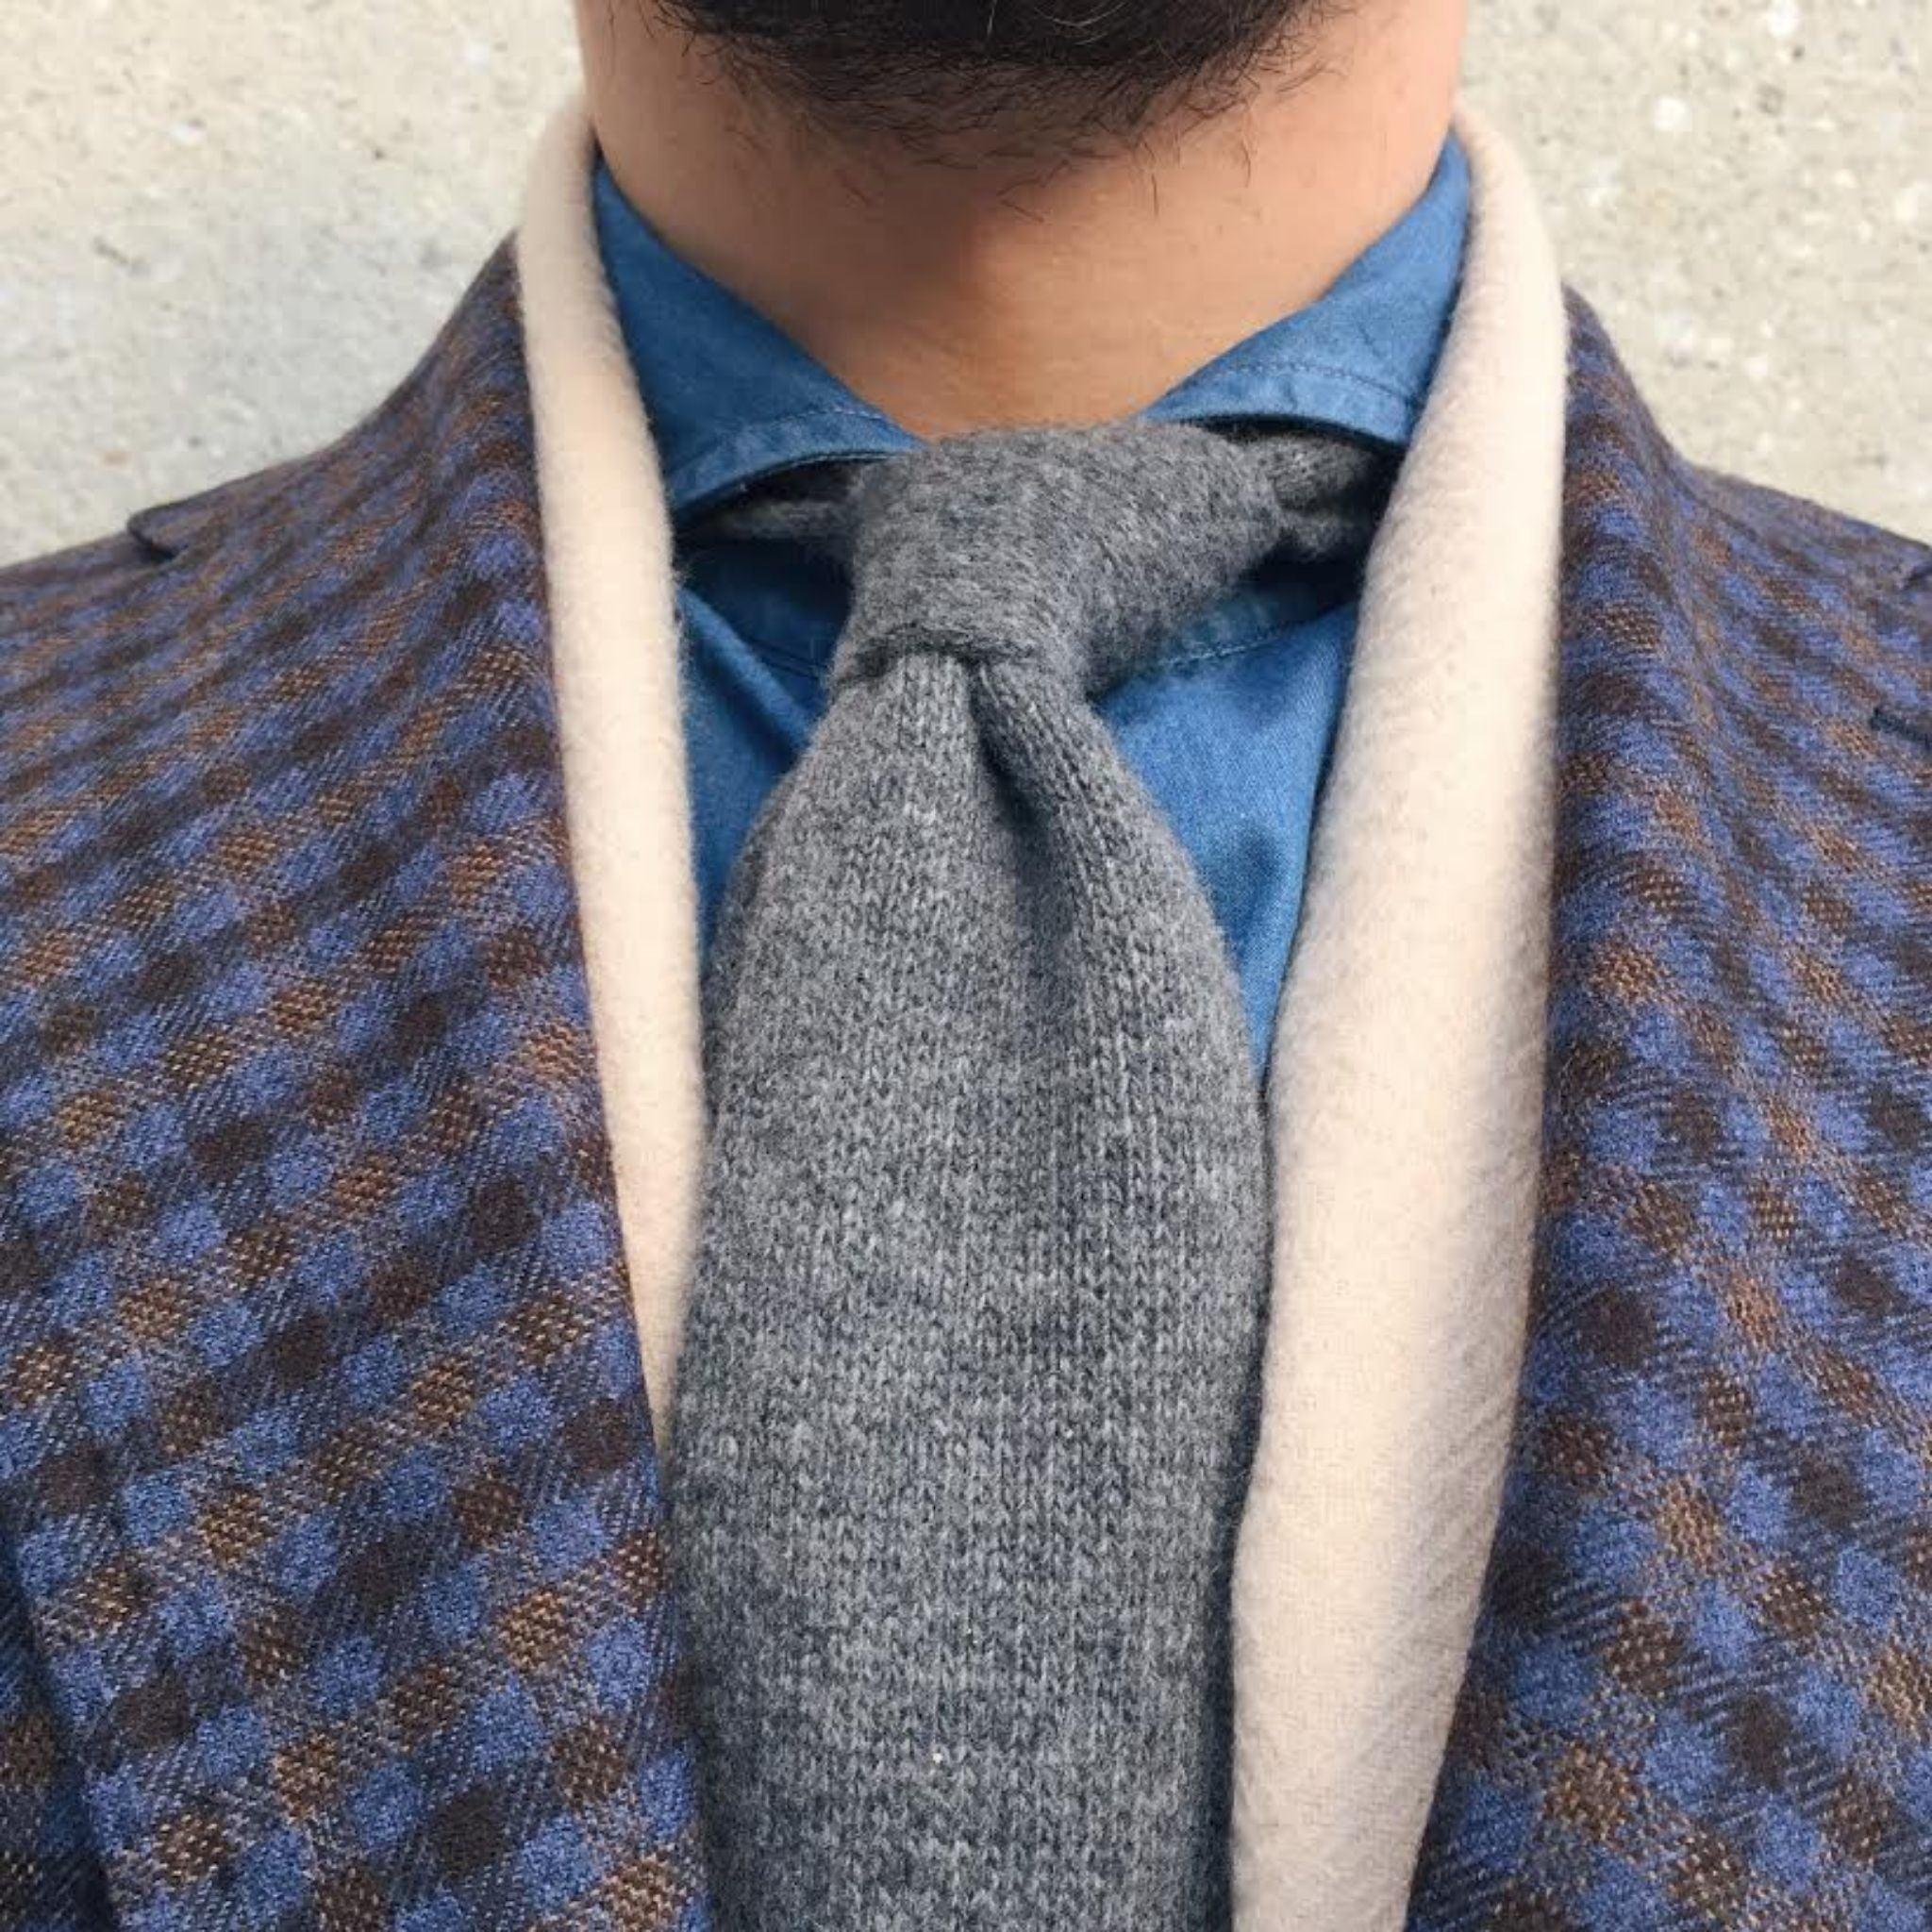 Berg&Berg cashmere tie with G.Abo Napoli sport coat